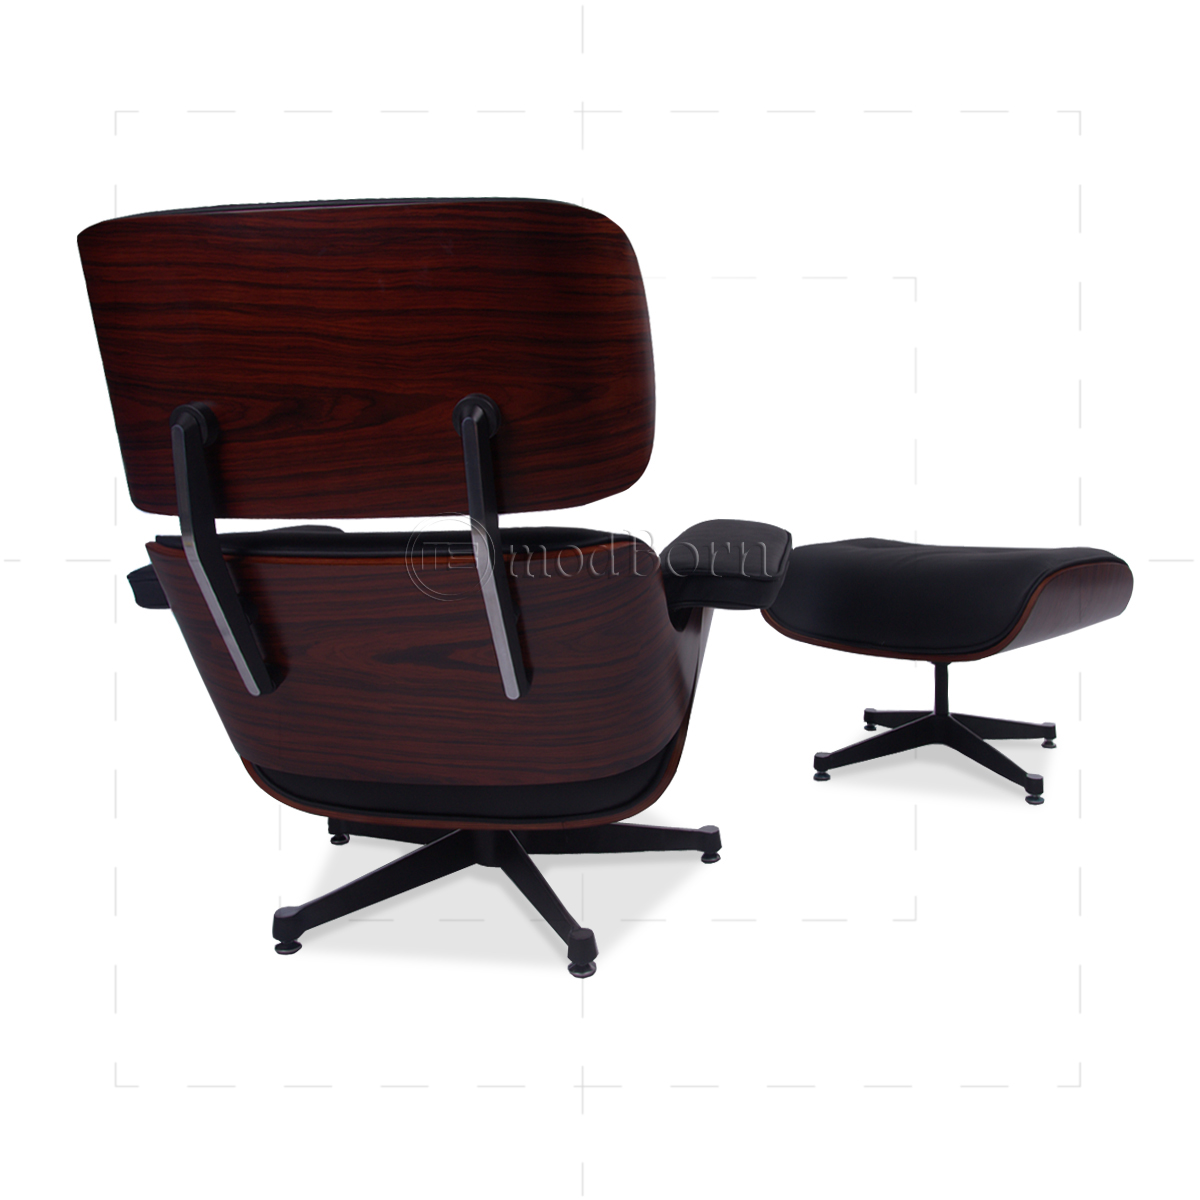 Eames style lounge chair and ottoman black leather for Eames replica deutschland